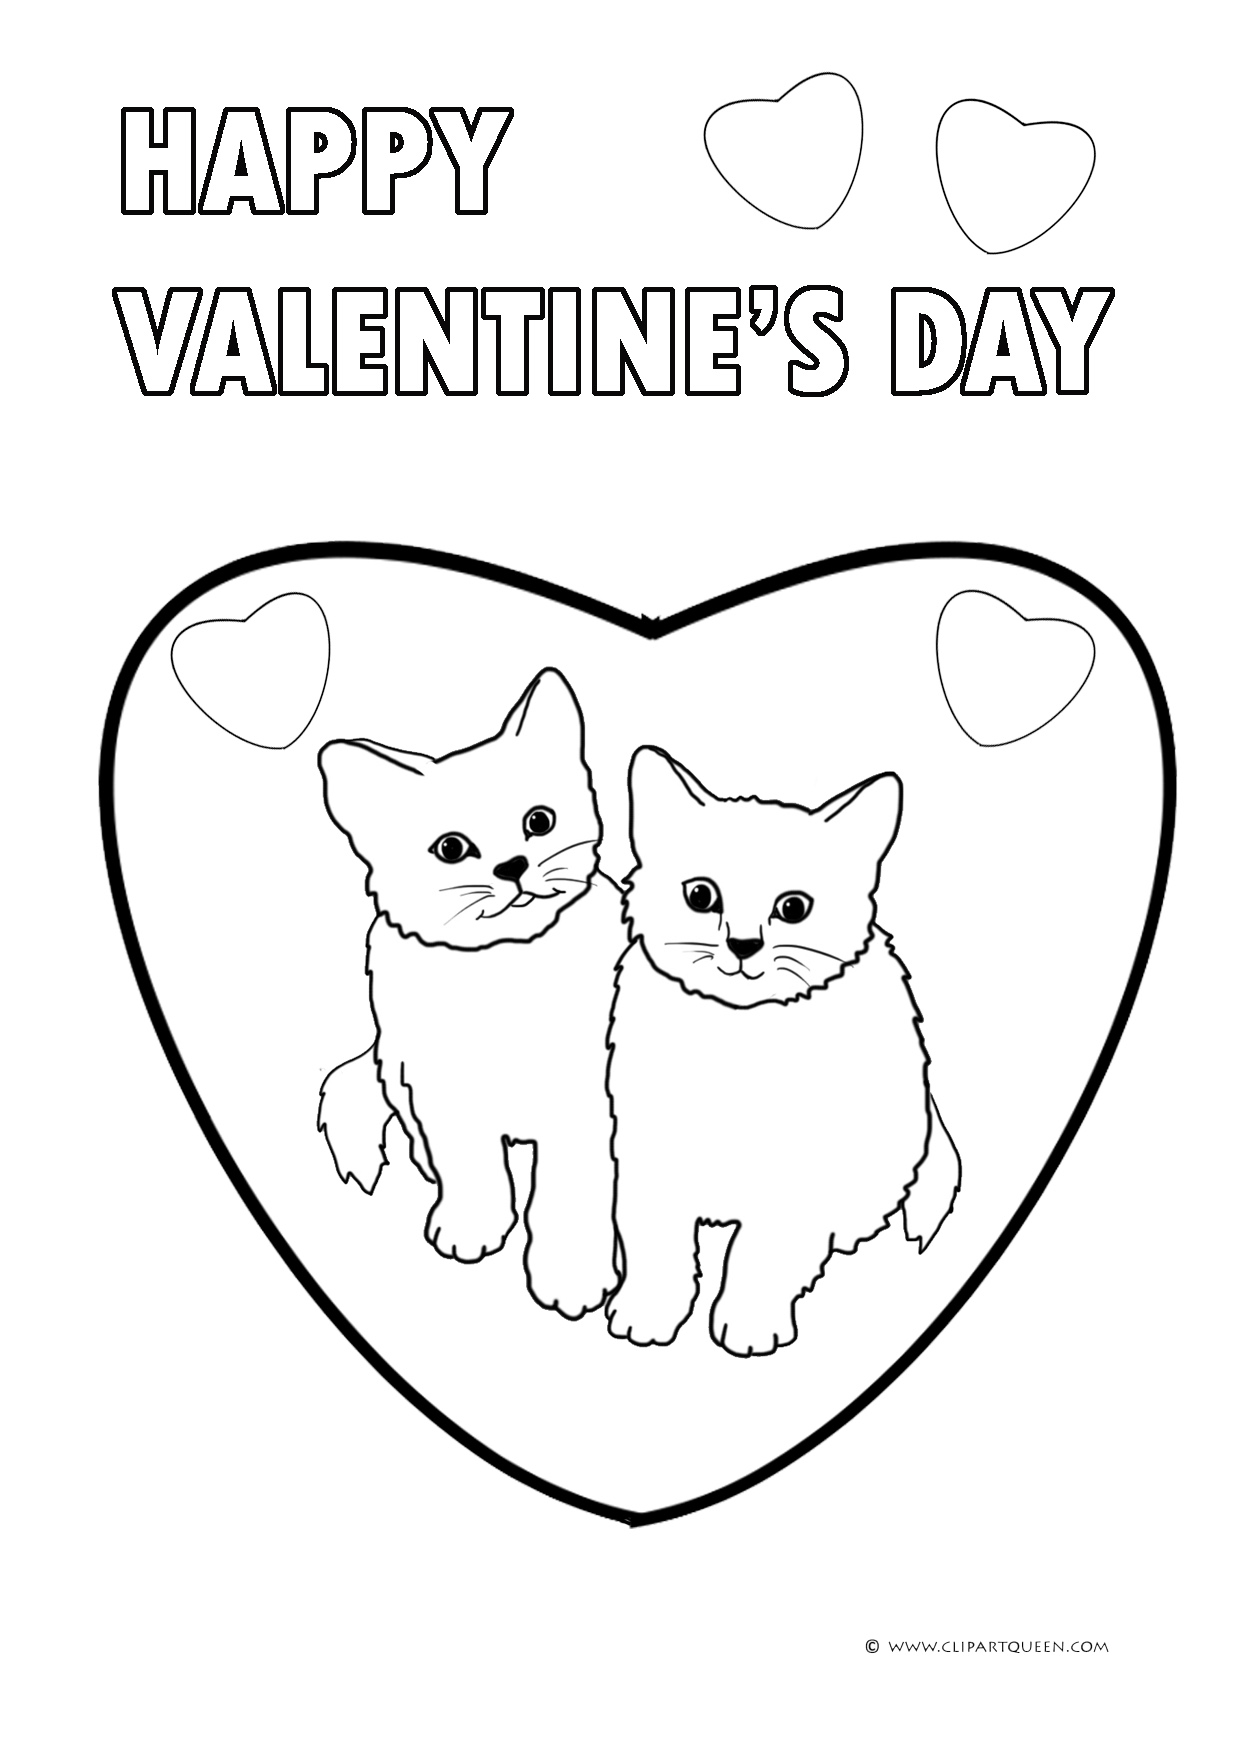 11 Valentines Day coloring pages